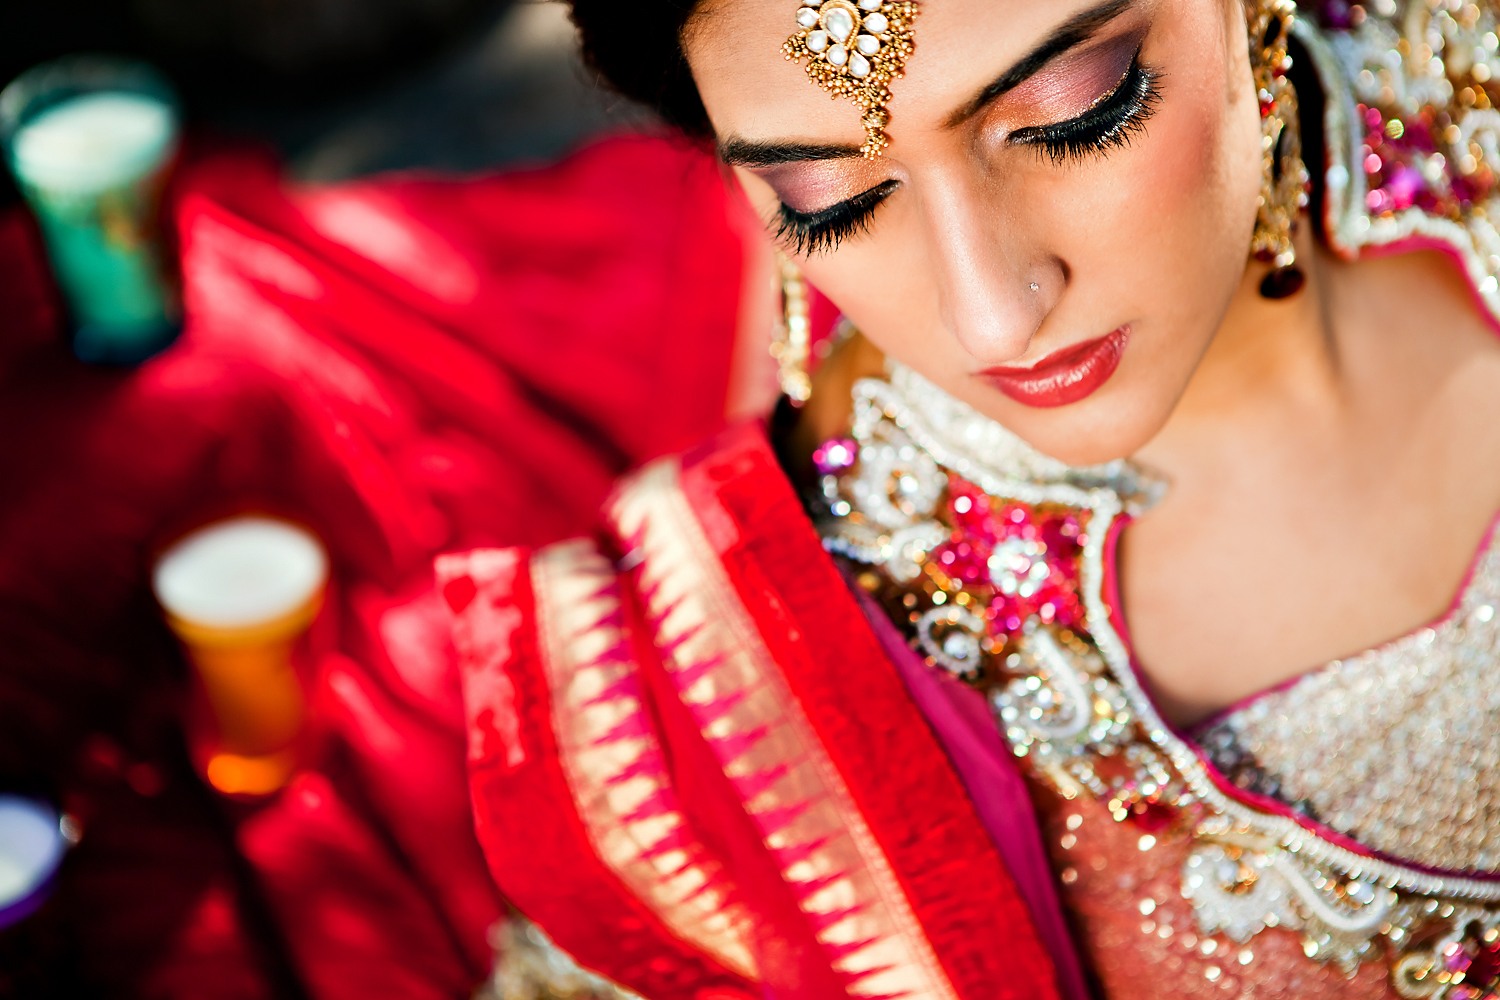 Bridal Makeup Different Cultures : wedding planning ideas incorporating culture into I Dos ...